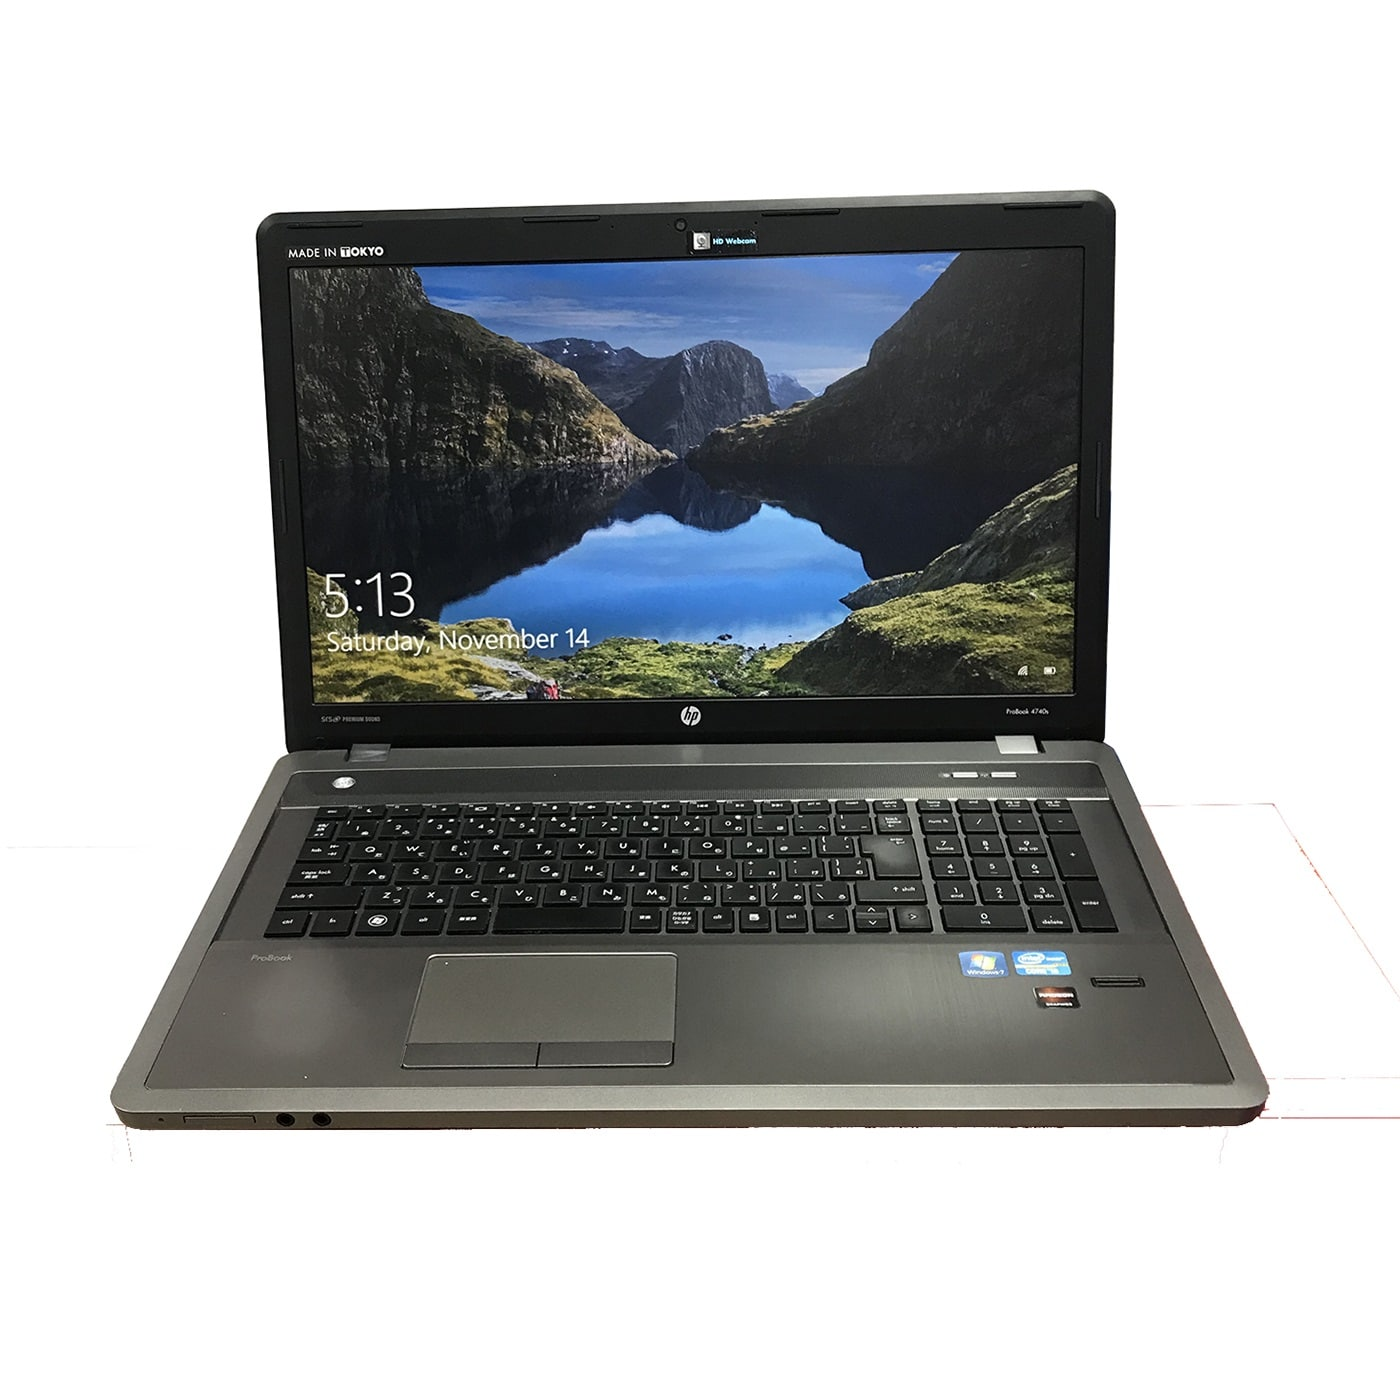 HP Probook 4740S Core i5 3320M, Ram 4GB, SSD 120GB, 17.3 inch, HD Graphics 4000 + AMD Radeon HD 7650M